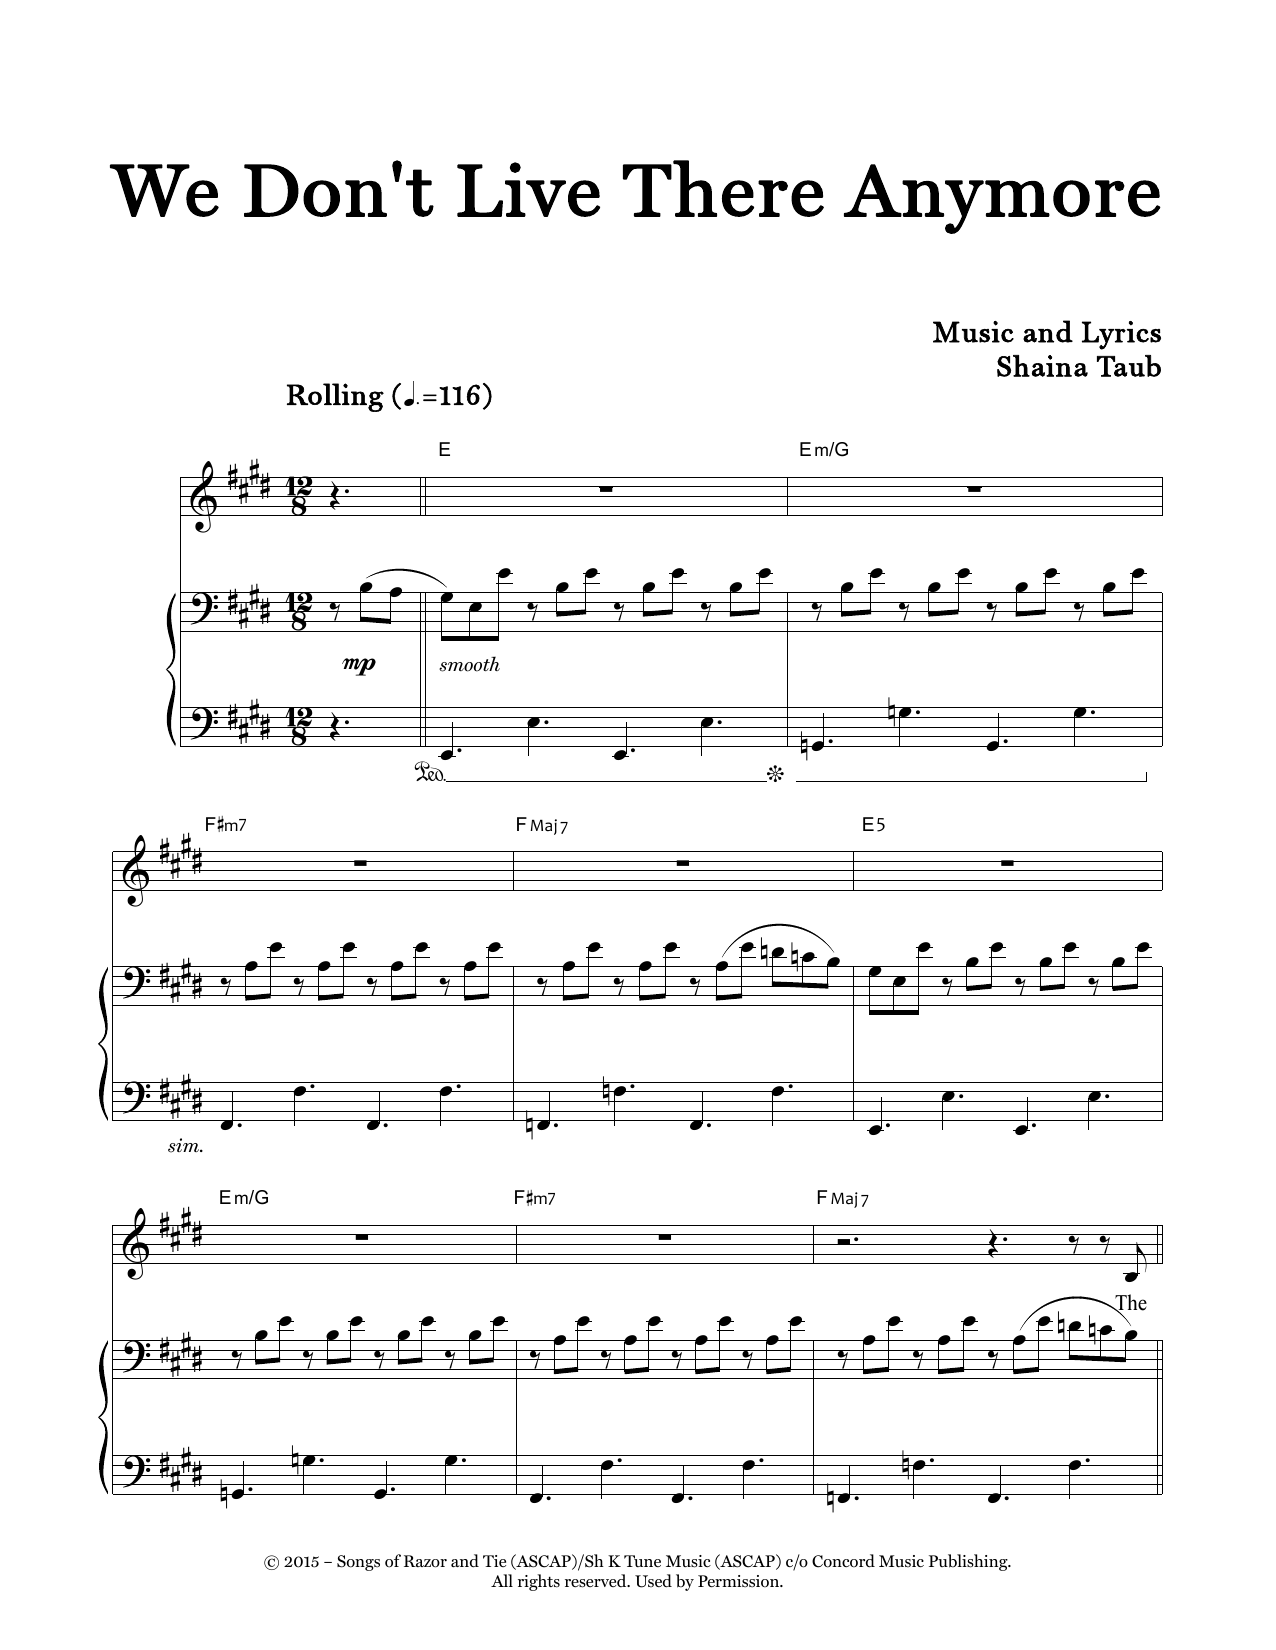 We Don't Live There Anymore Sheet Music